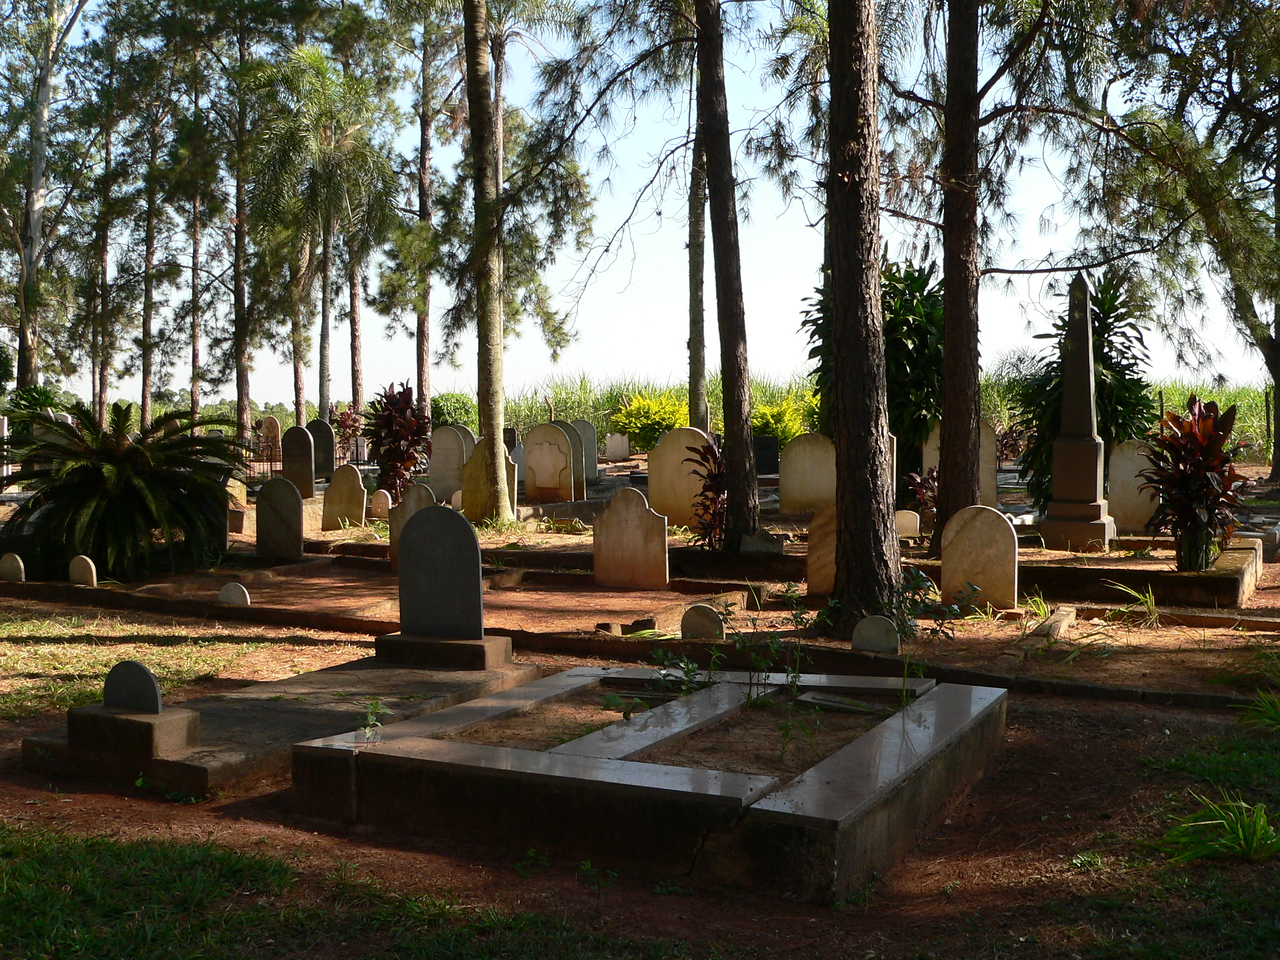 A tangle of pine and palm, the tombstones rest in relative shadow and calm.